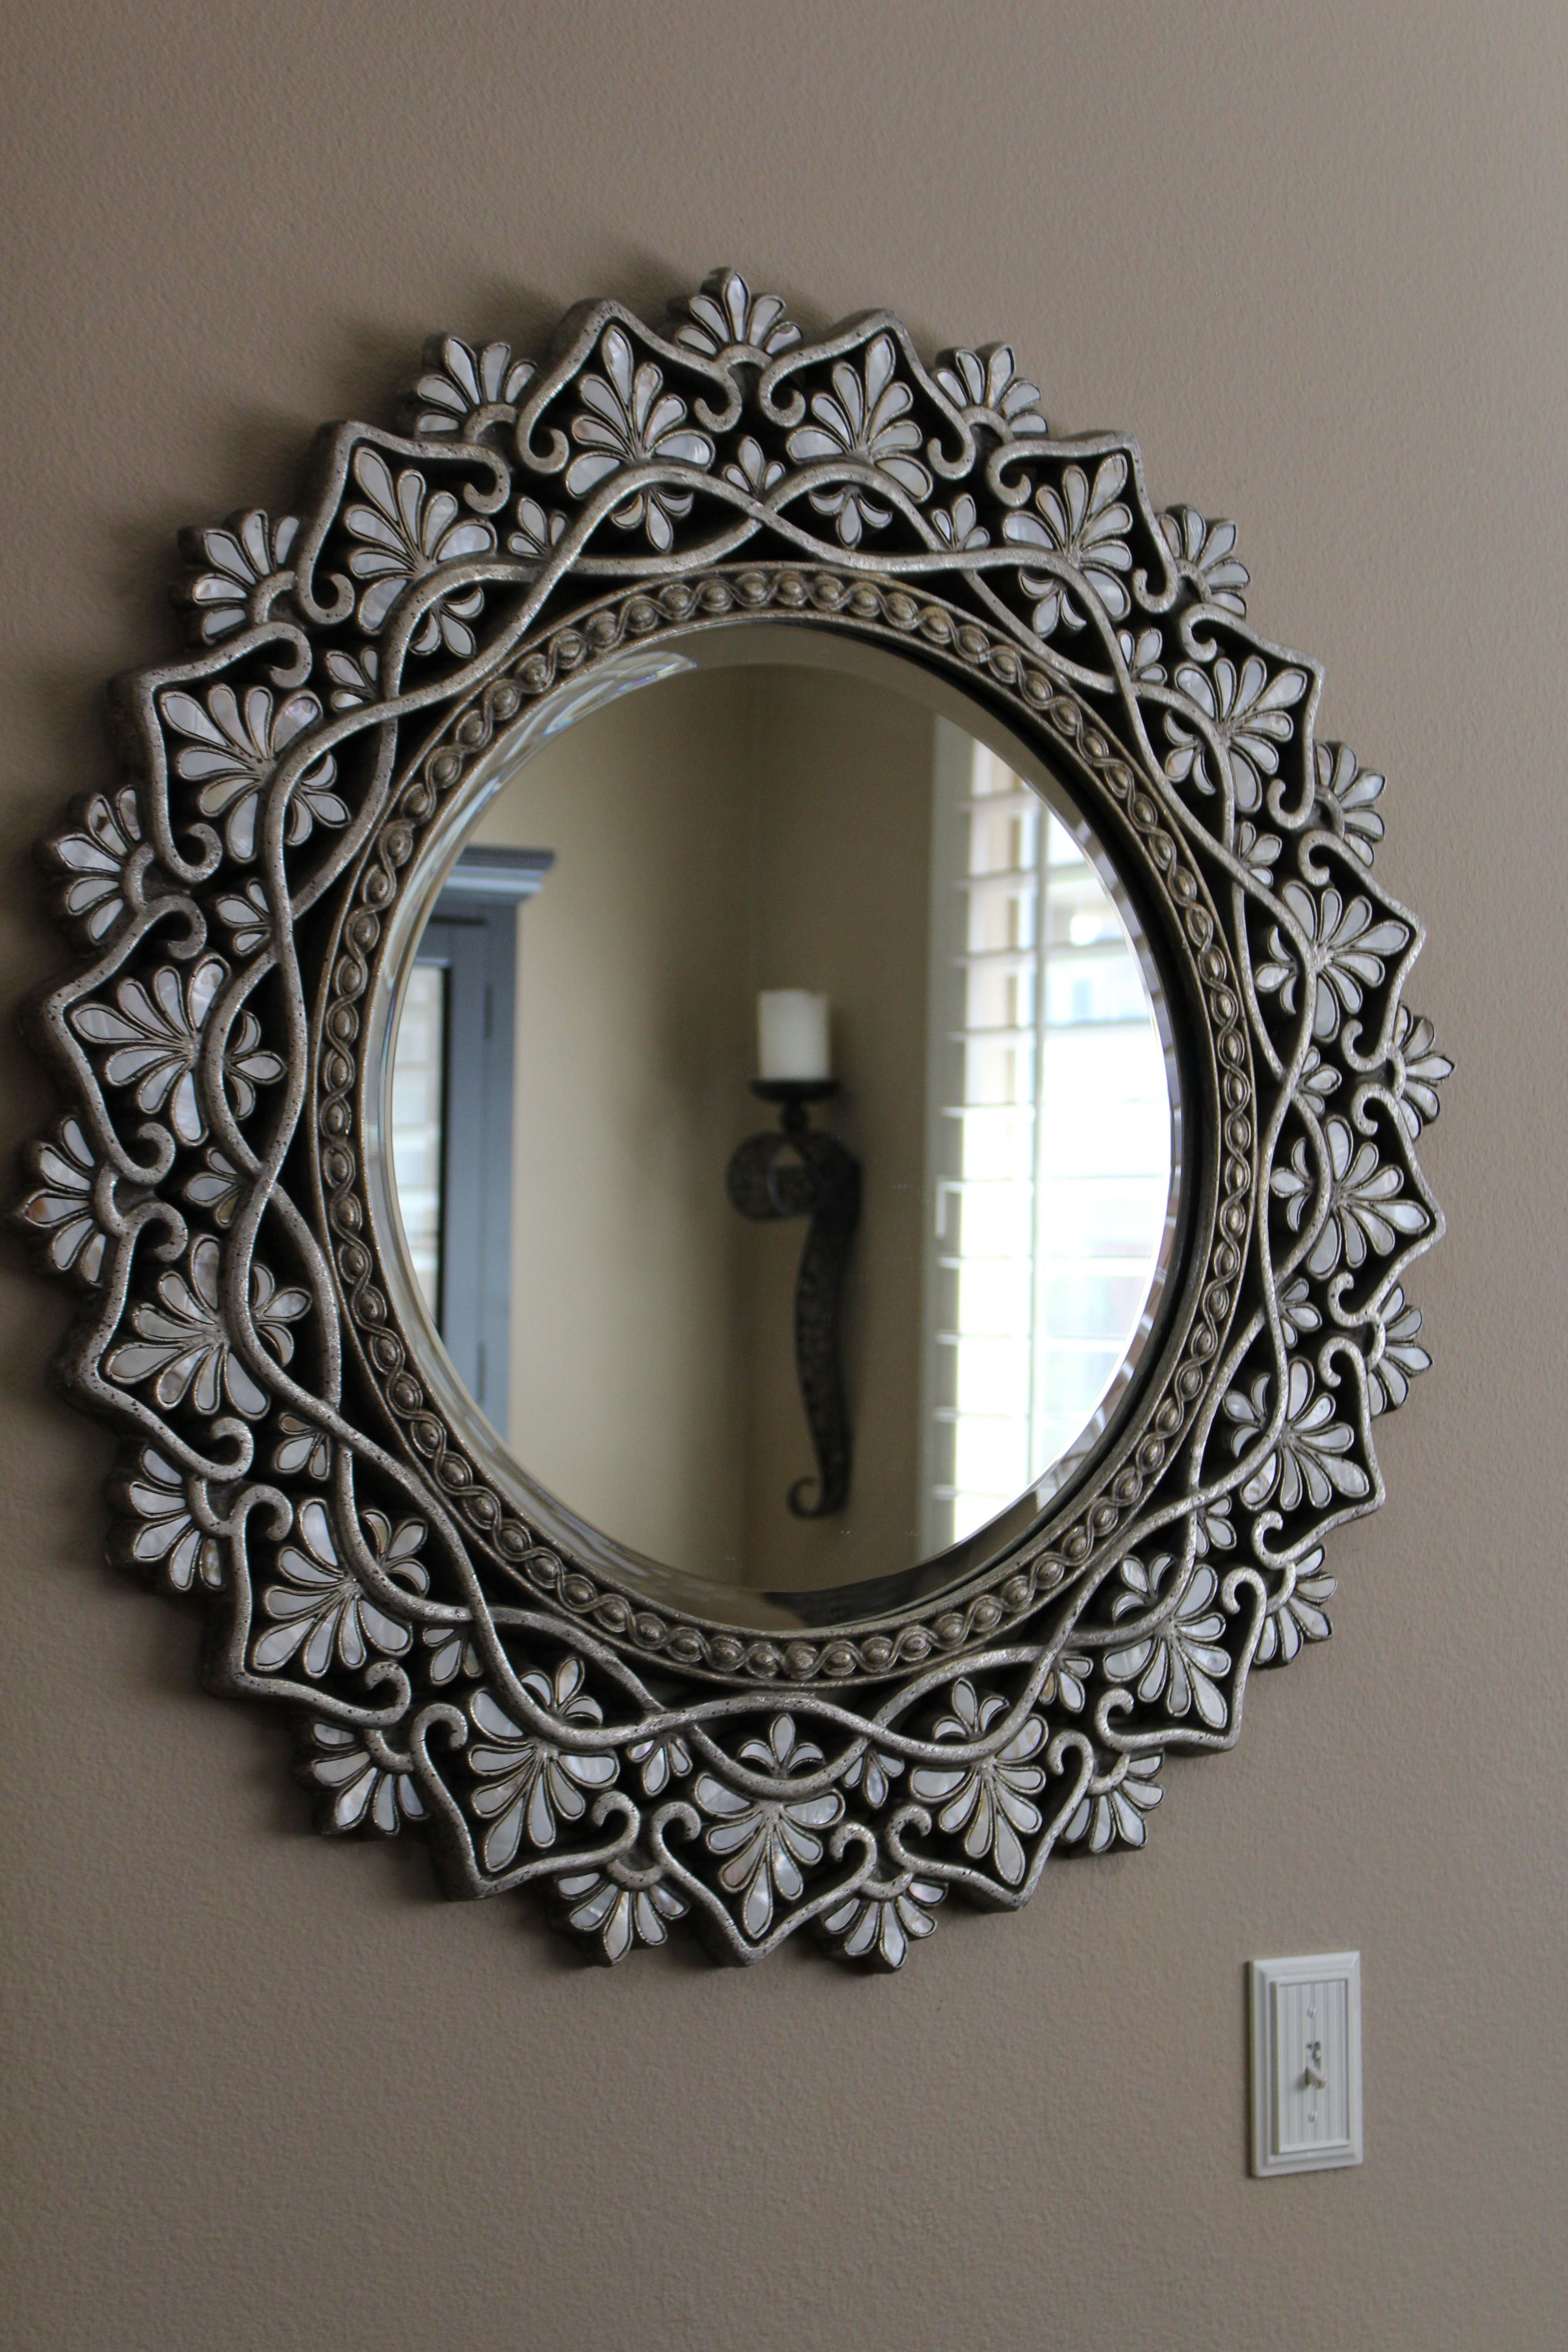 Pier 1 Imports framed mirror. It took me several years just to find ...